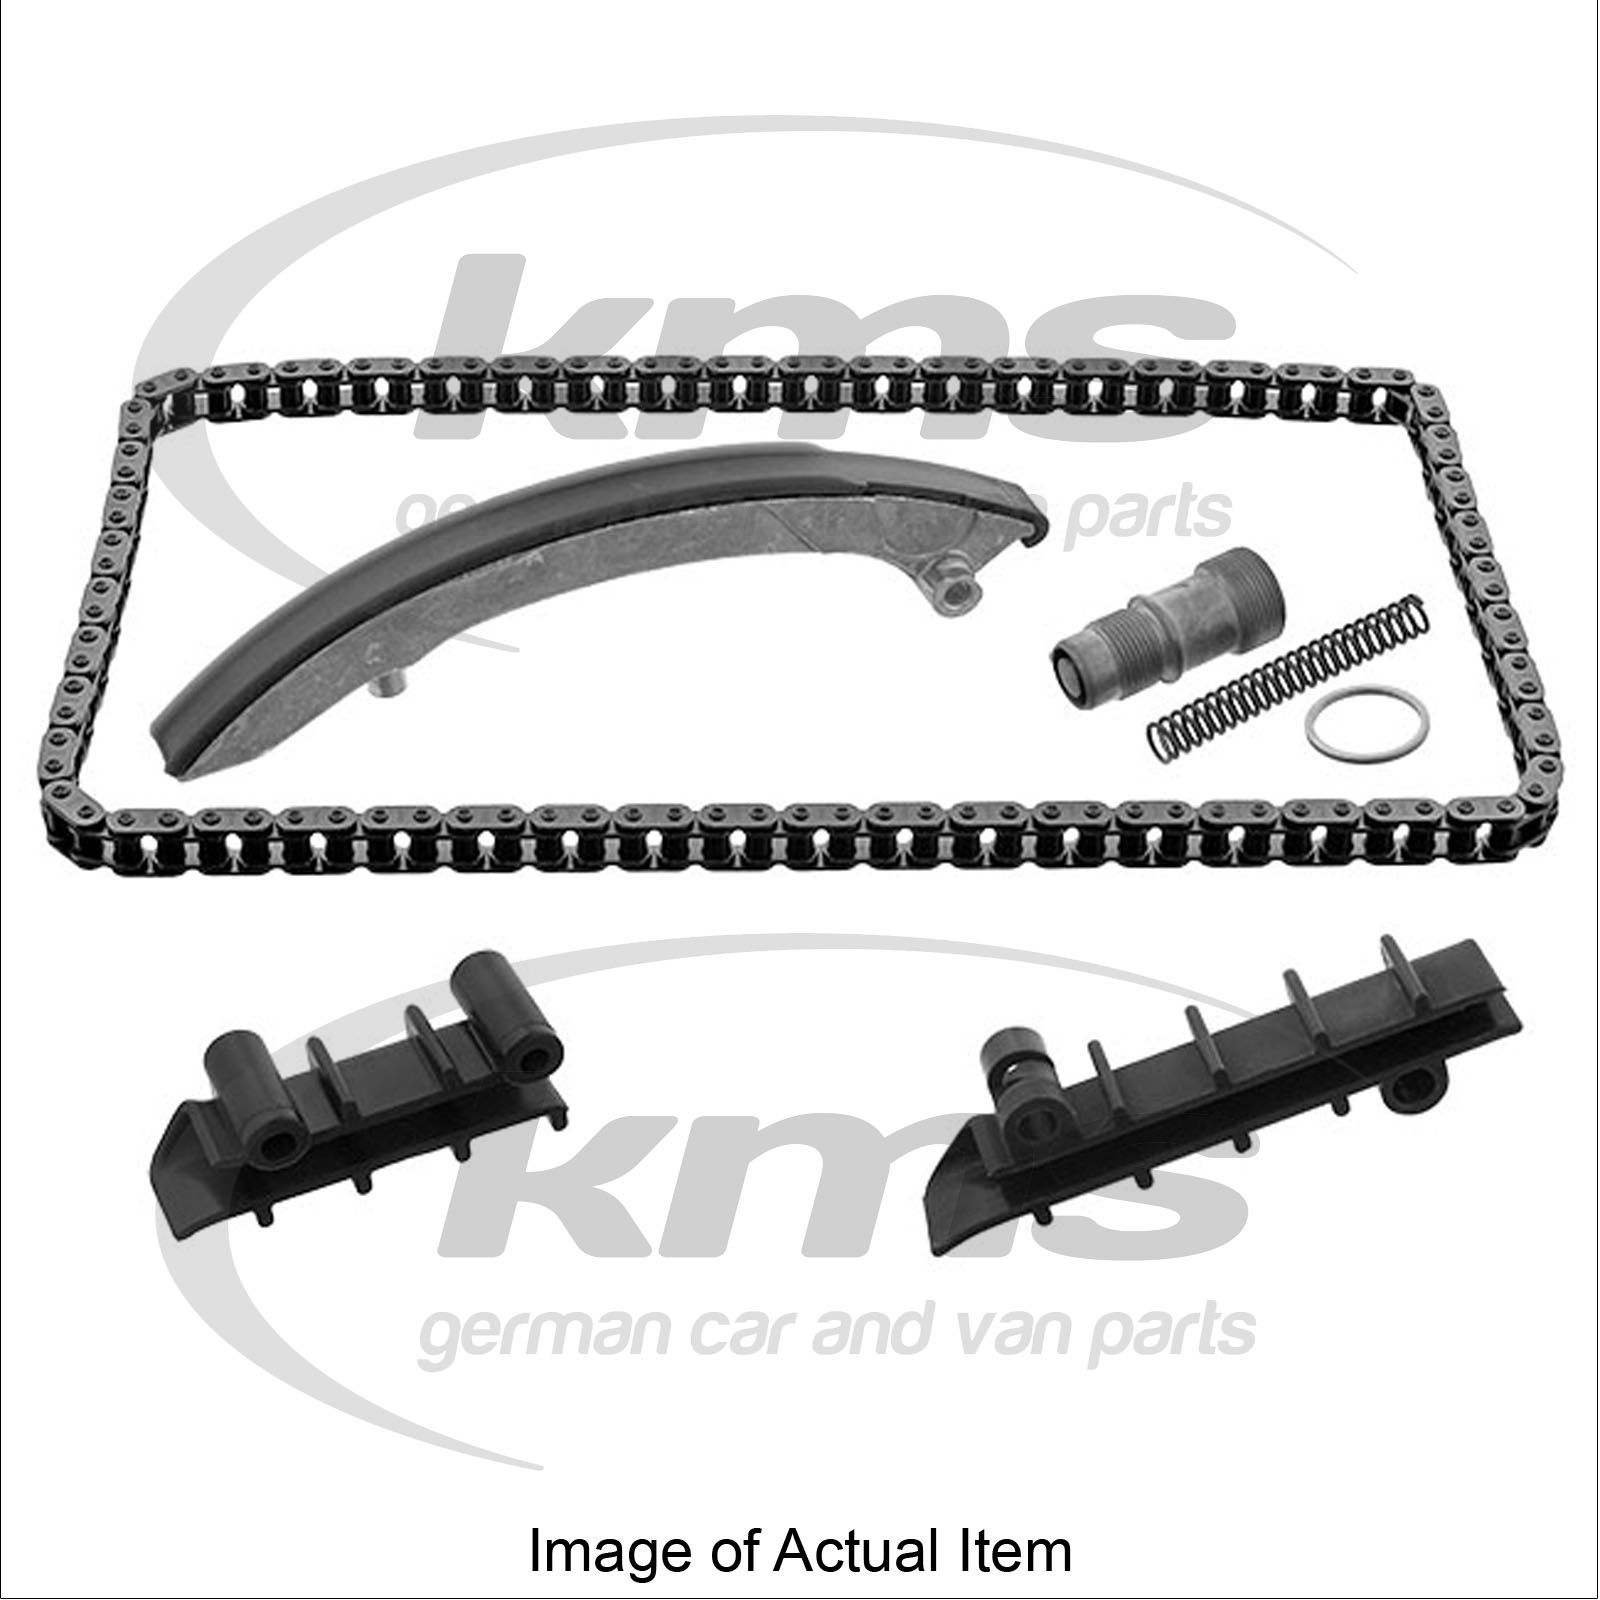 Timing chain kit mercedes benz 200 series saloon 230e w124 for Mercedes benz tire chains